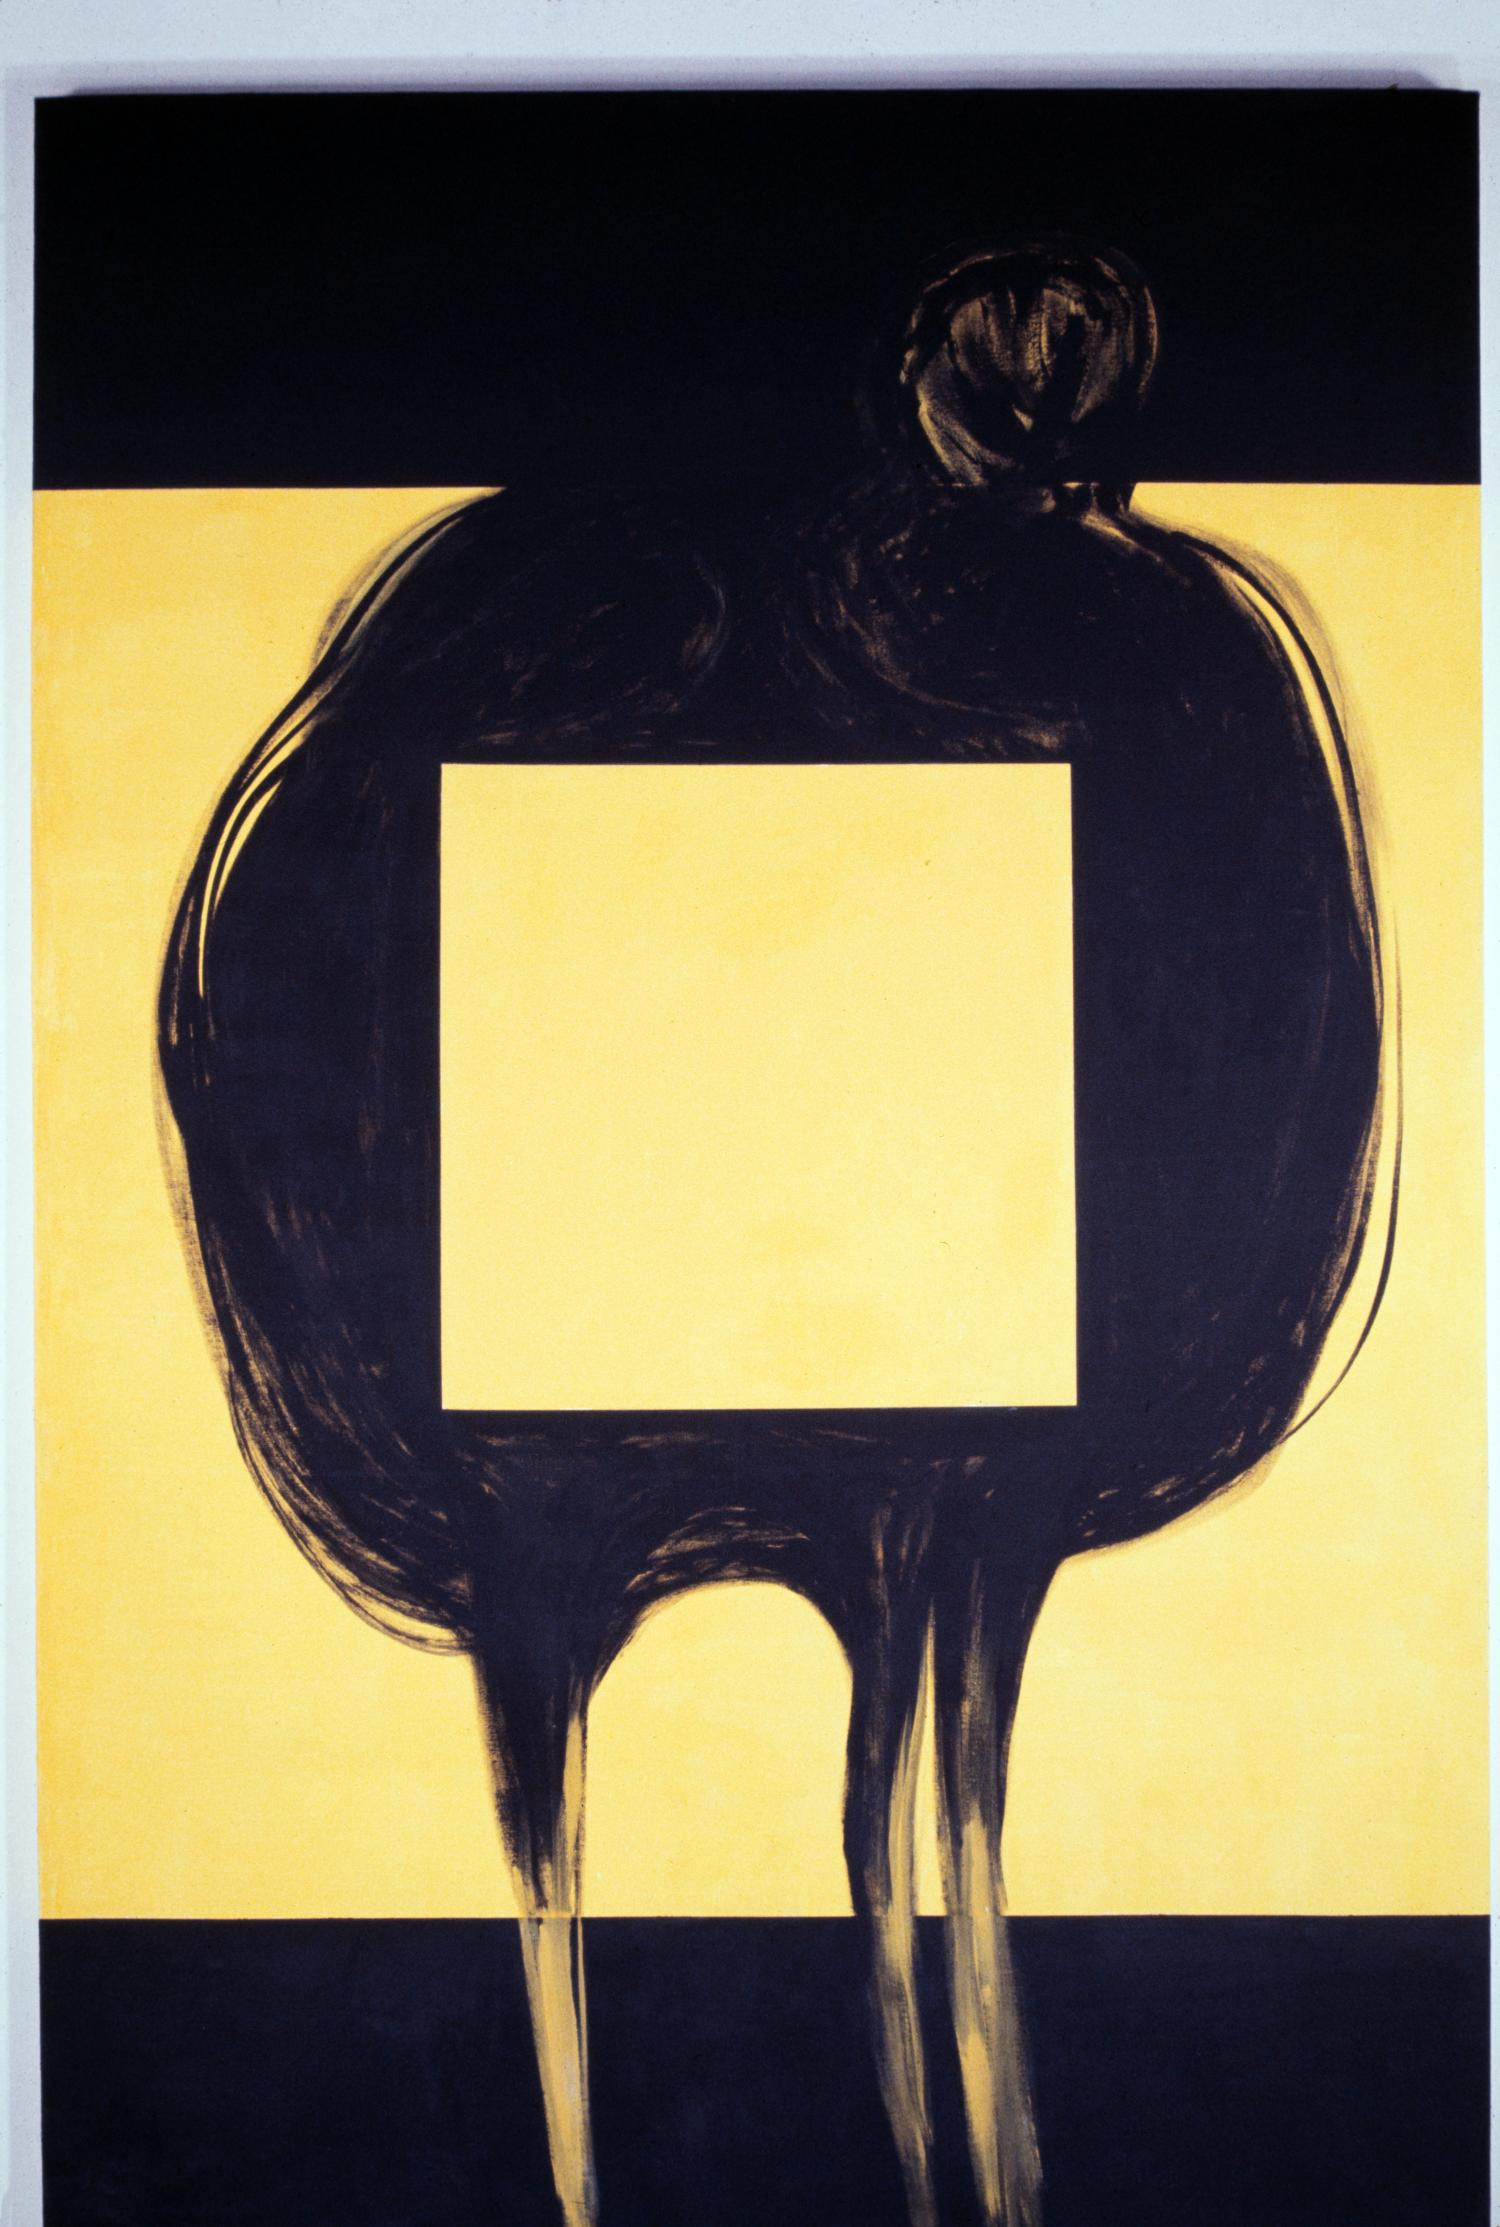 photo of black and yellow painting. there are wide black borders at the top and bottom on the canvas. an amorphous black shape is painted beginning within the top border and extending three tenticles into the bottom border. the background in the center is yellow, with a large yellow square in the center of the black shape.